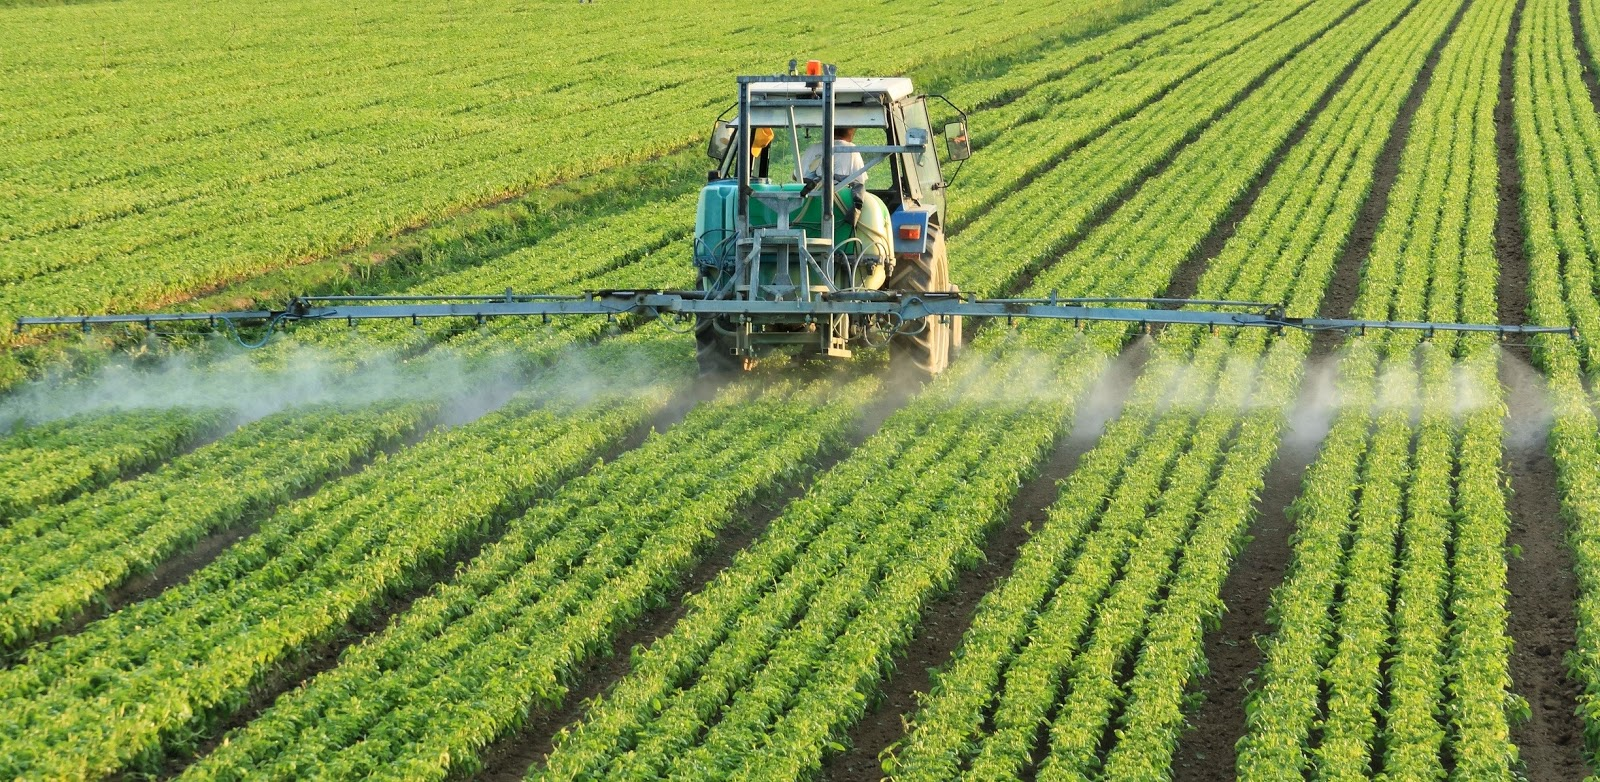 Bermuda Suspends Imports of Glyphosate after WHO Report